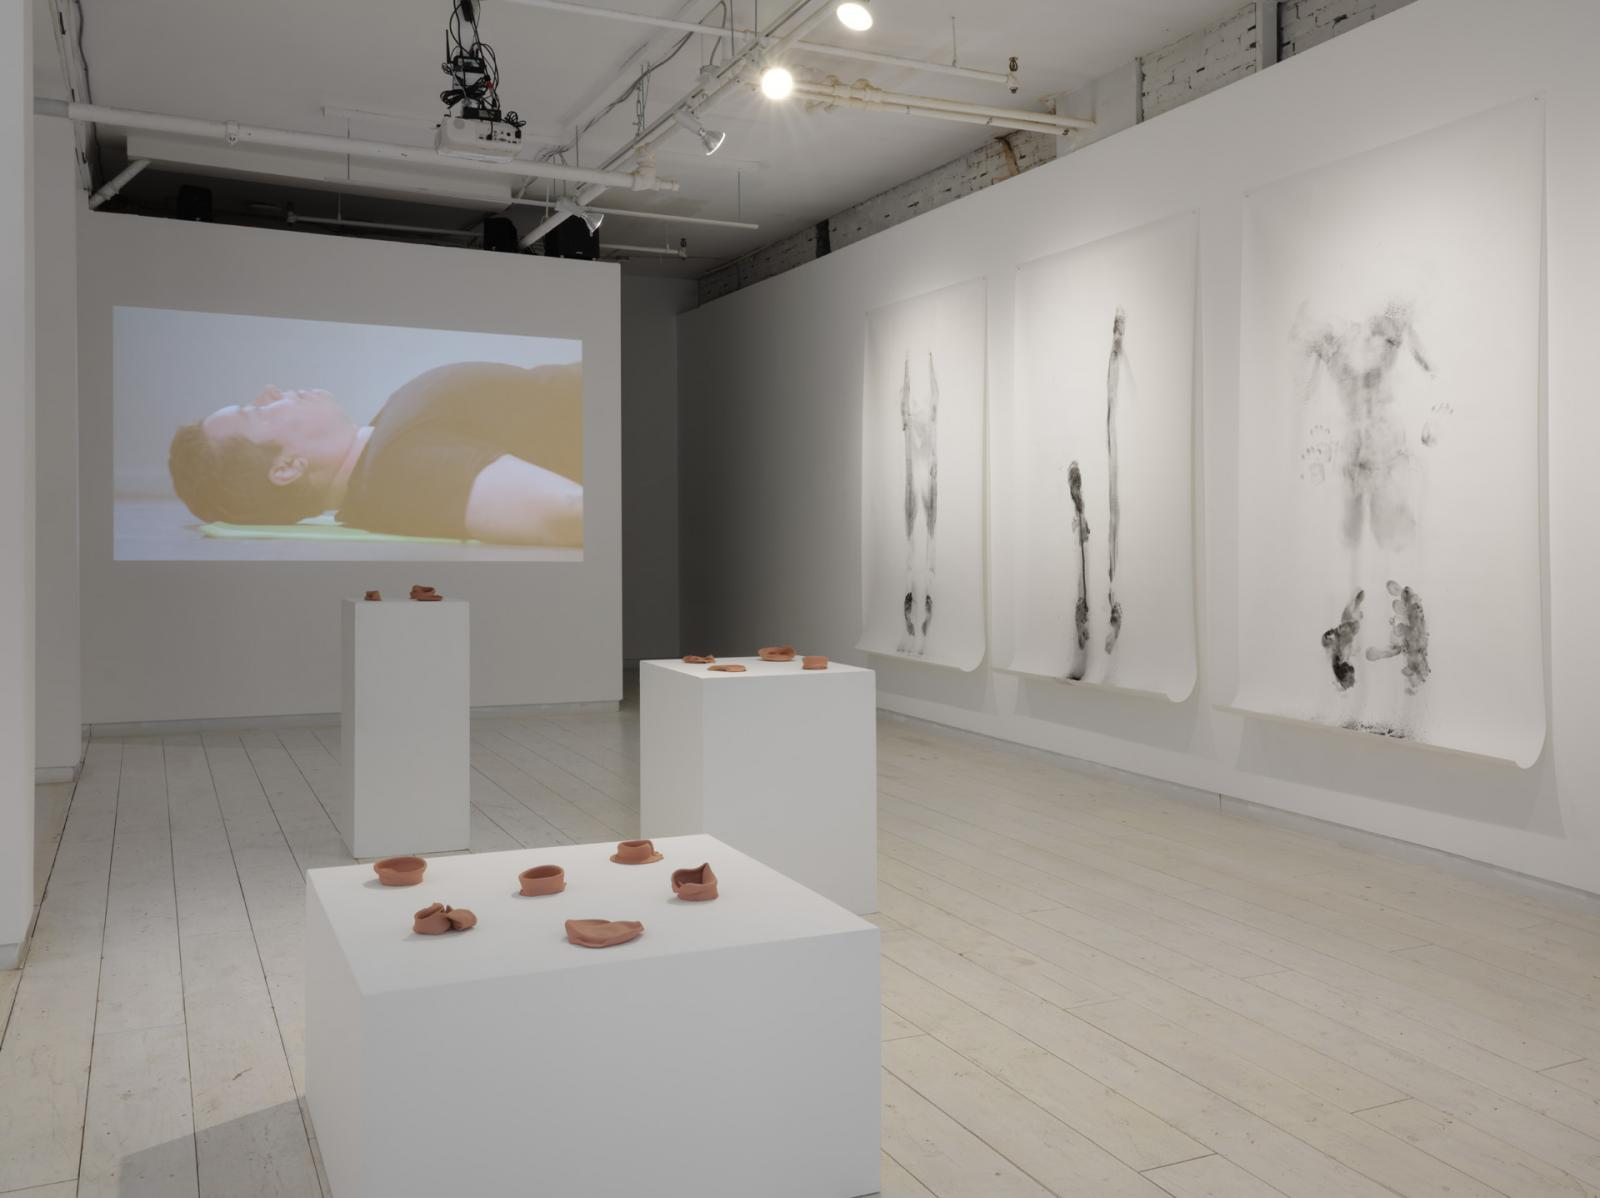 Installation view featuring three large drawings, a video of the artist lying on their back, and three plinths displaying unglazed ceramic forms.